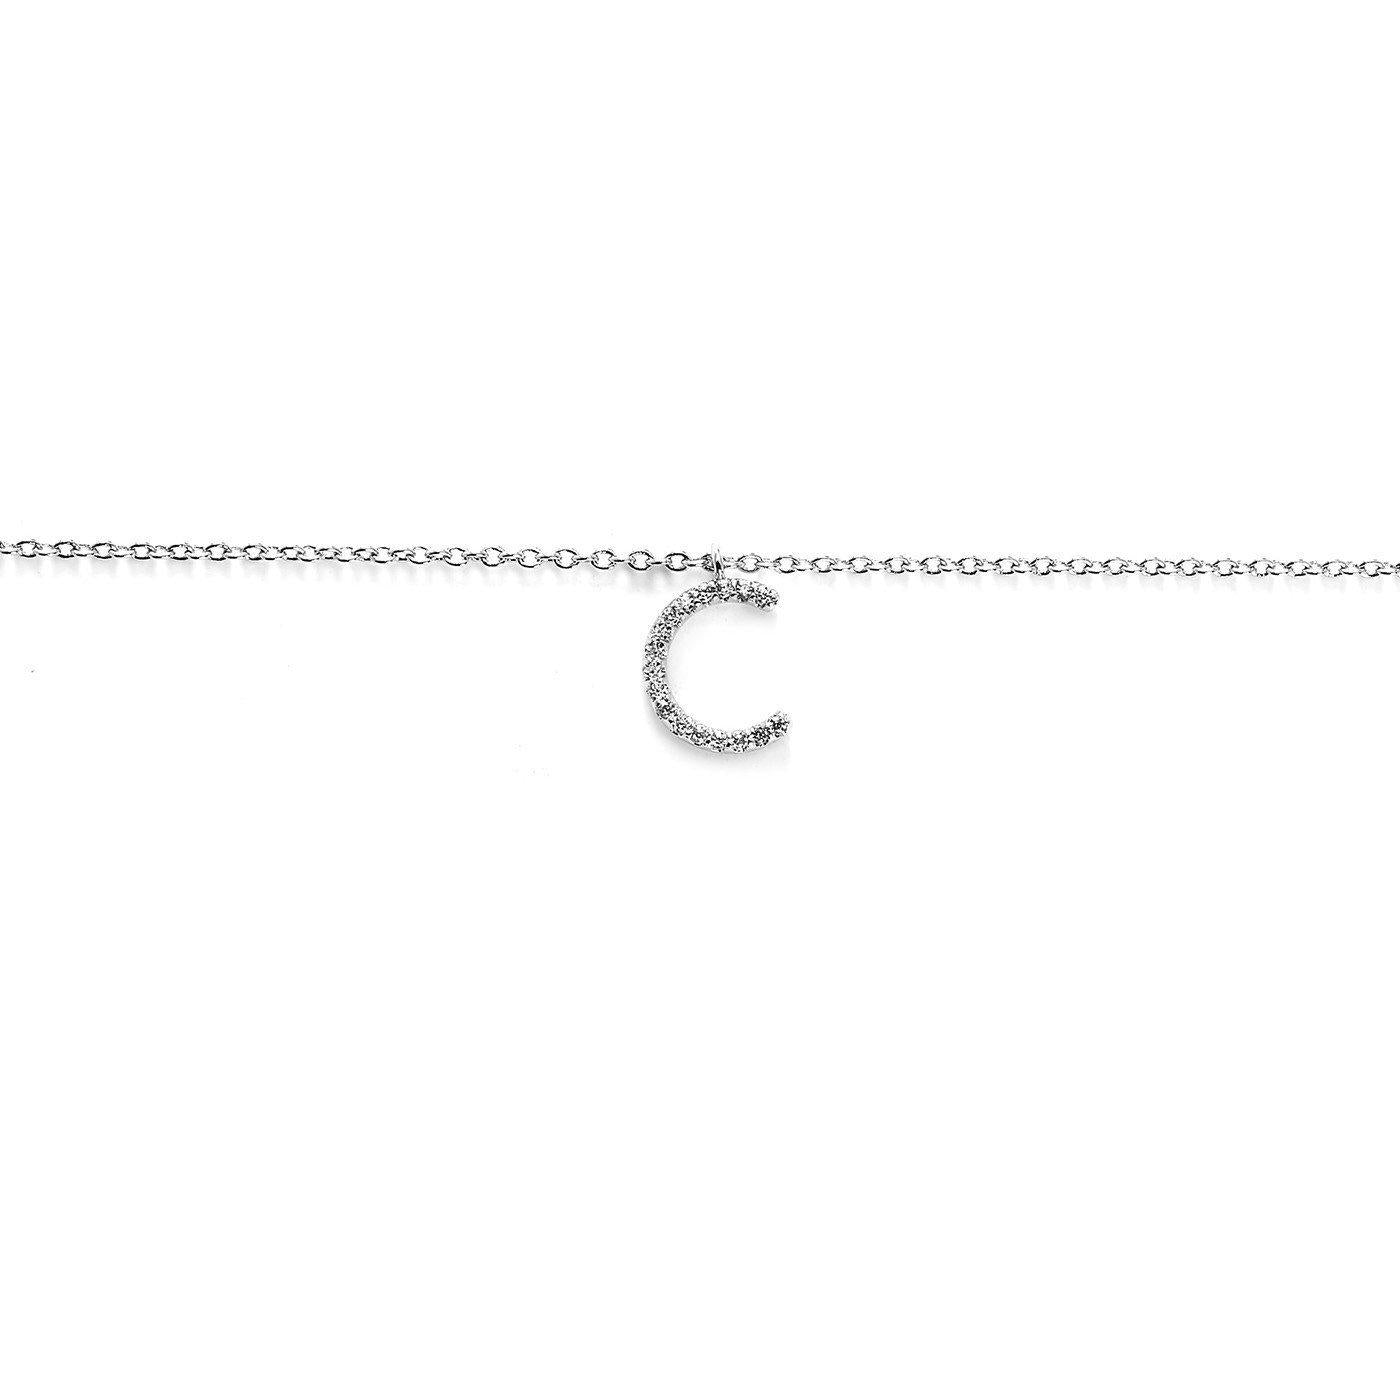 Your Initial C Necklace-Blinglane